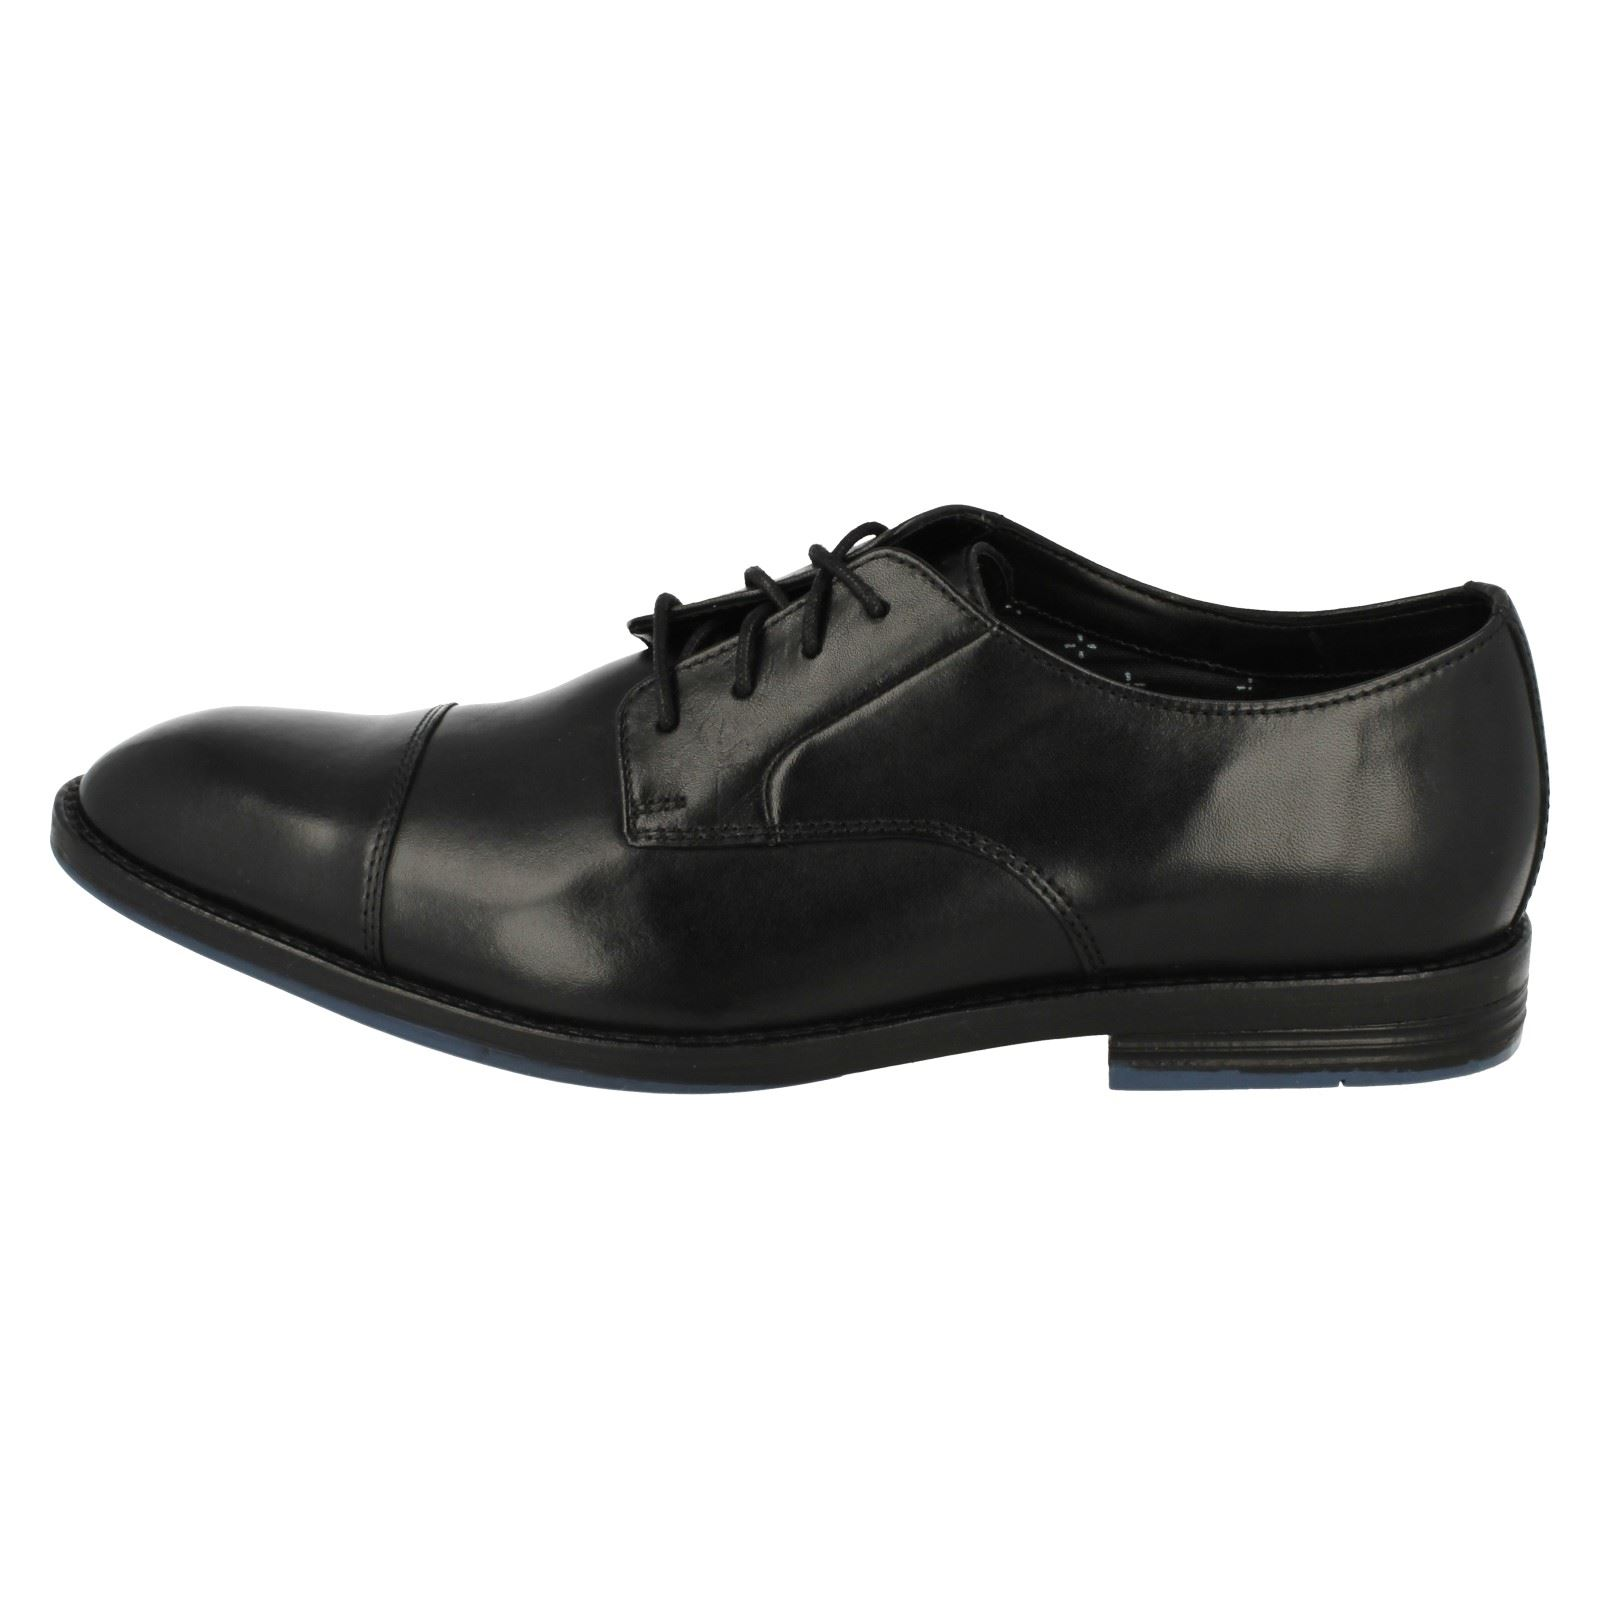 Smart Clarks Black Shoes Prangley Formal Up hombre Clarks para Lace Cap XqfRpX